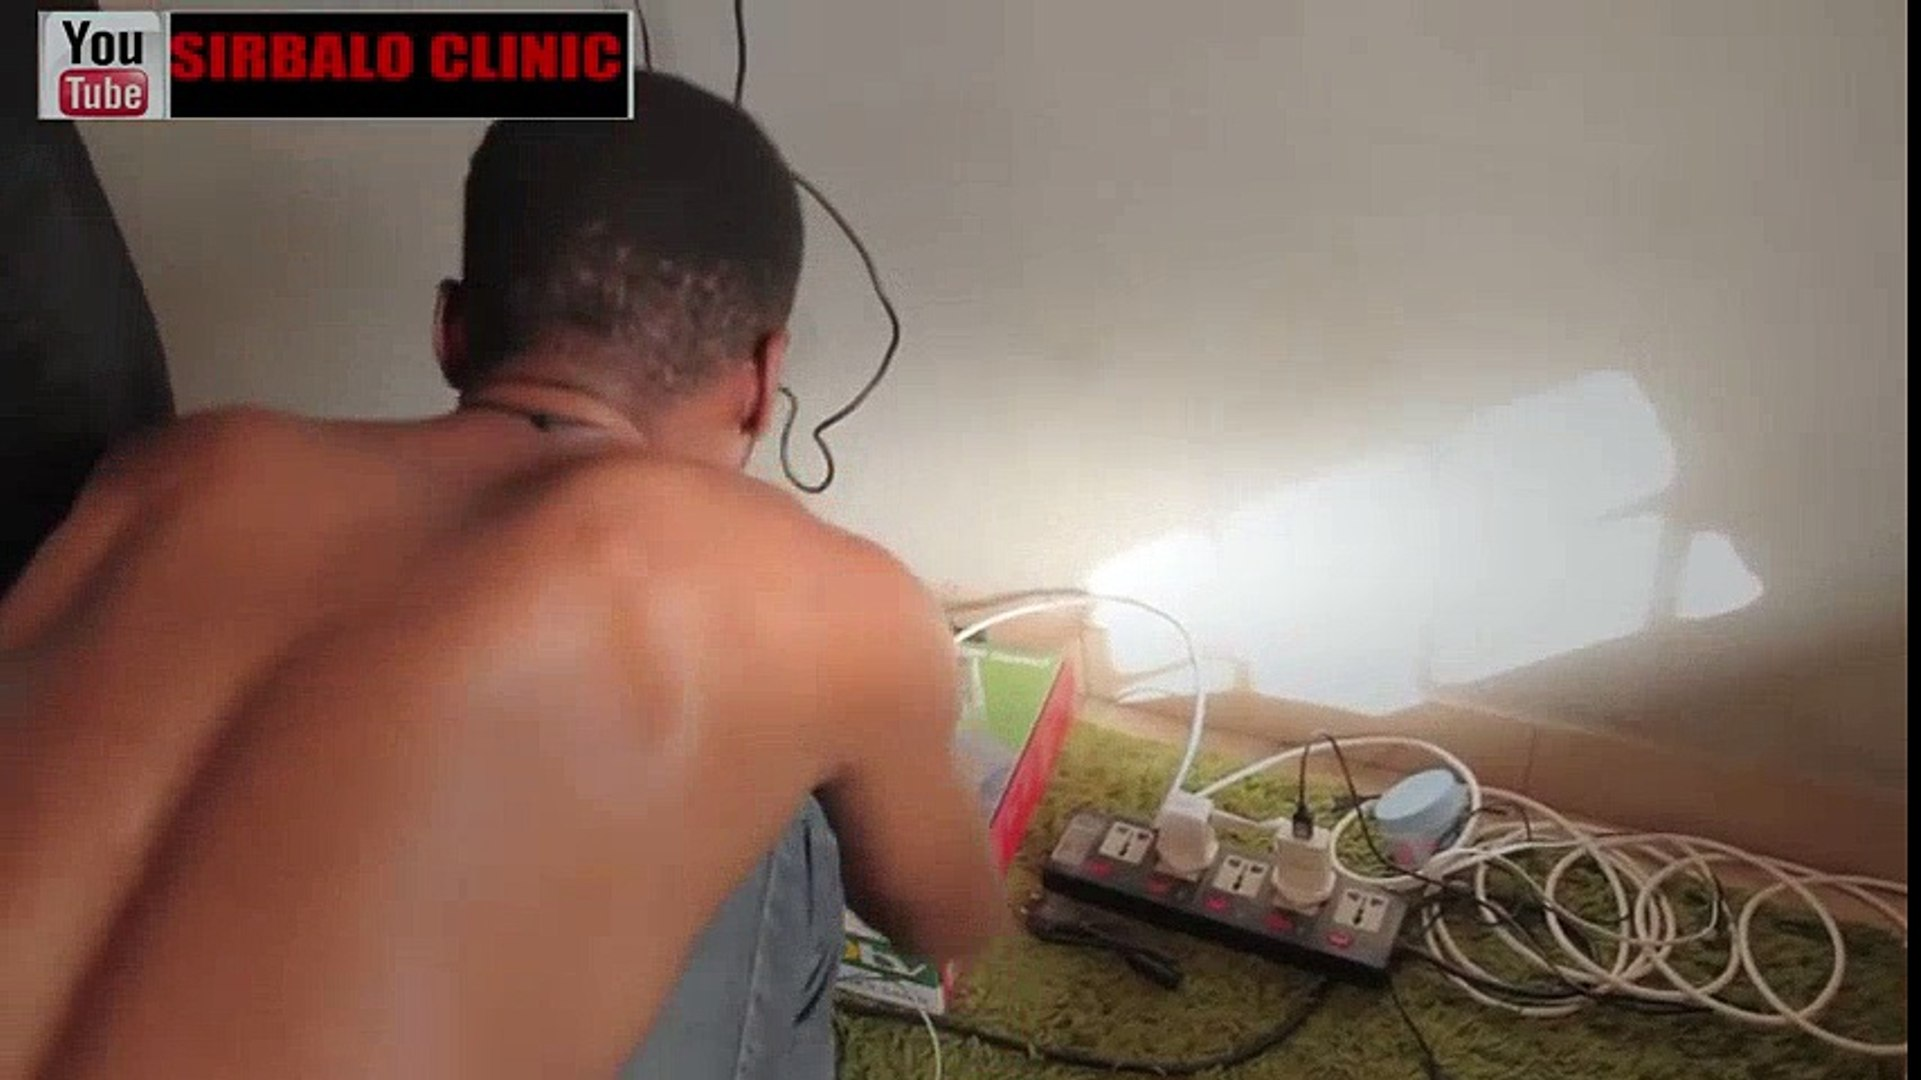 3 WISE MEN (SIRBALO CLINIC) (COMEDY SKIT) (FUNNY VIDEOS) - Latest 2018 Nigerian Comedy| Comedy Skits